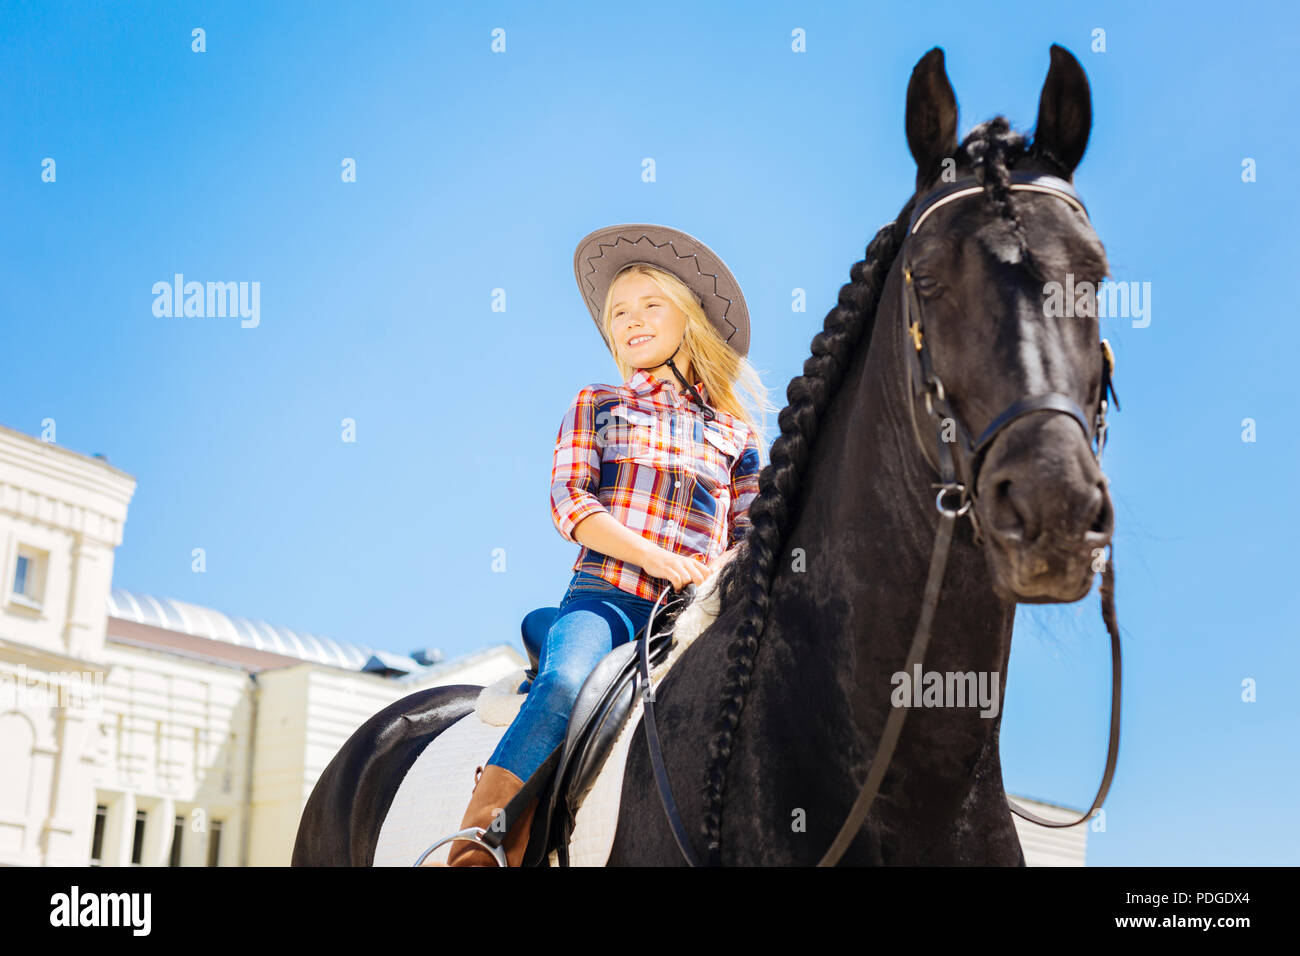 Smiling girl wearing jeans and riding boots sitting on dark horse - Stock Image